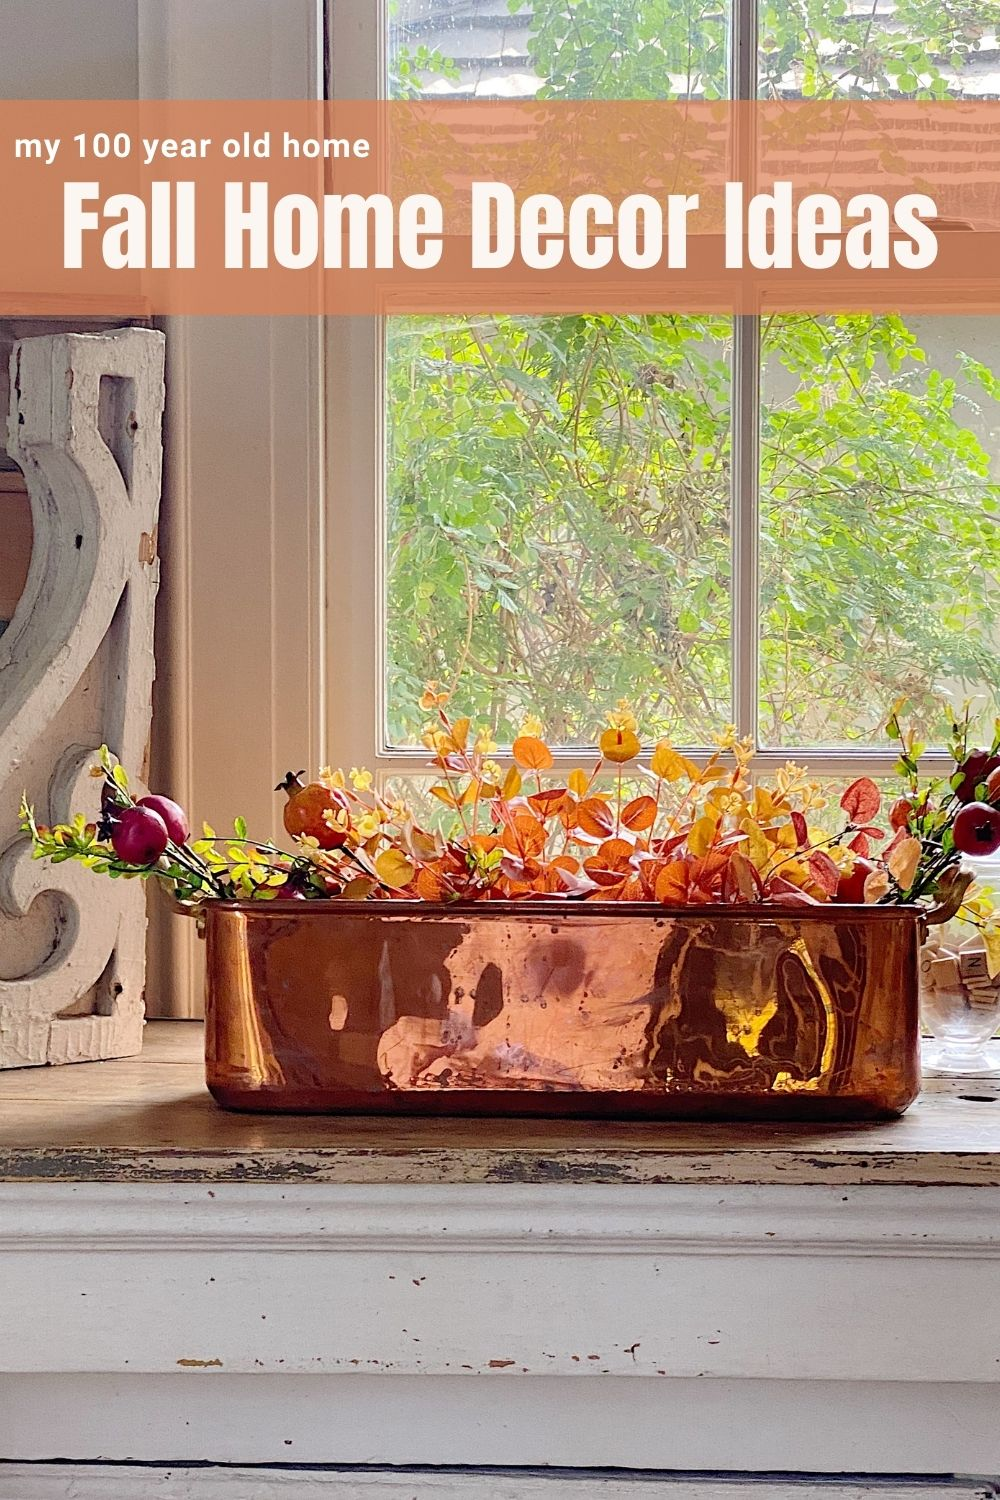 I am still gathering all of my fall home decor ideas. Let's start by taking a glance back at last year's ideas for fall decor.